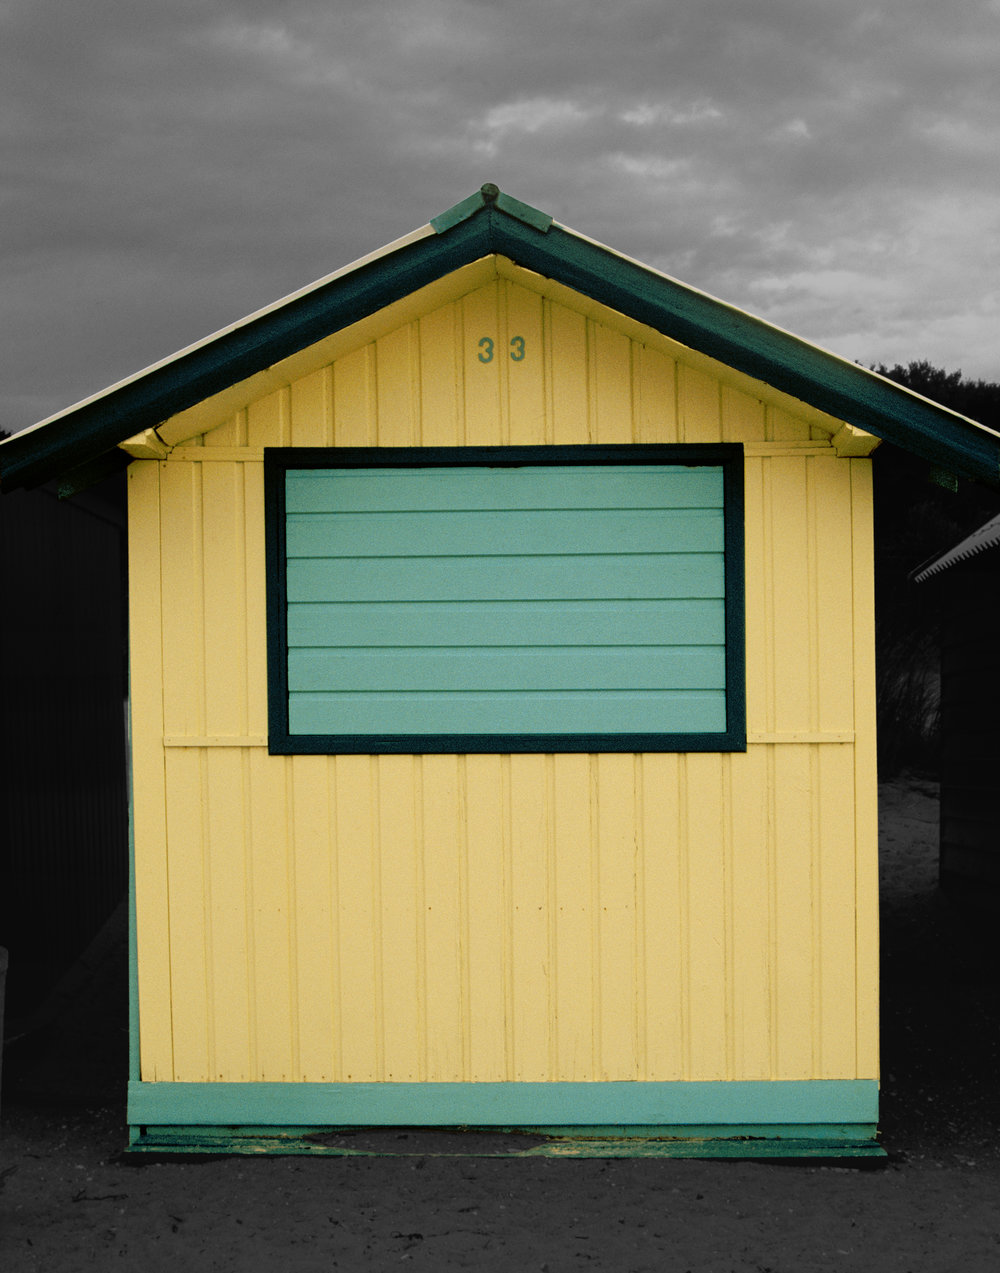 Judy Gelles,  Beach Box No. 33 , 2003  Digital pigment print, 8 x 10 in, edition of 20; 11 x 14 in, edition of 25; 16 x 20 in, edition of 25   Inquire